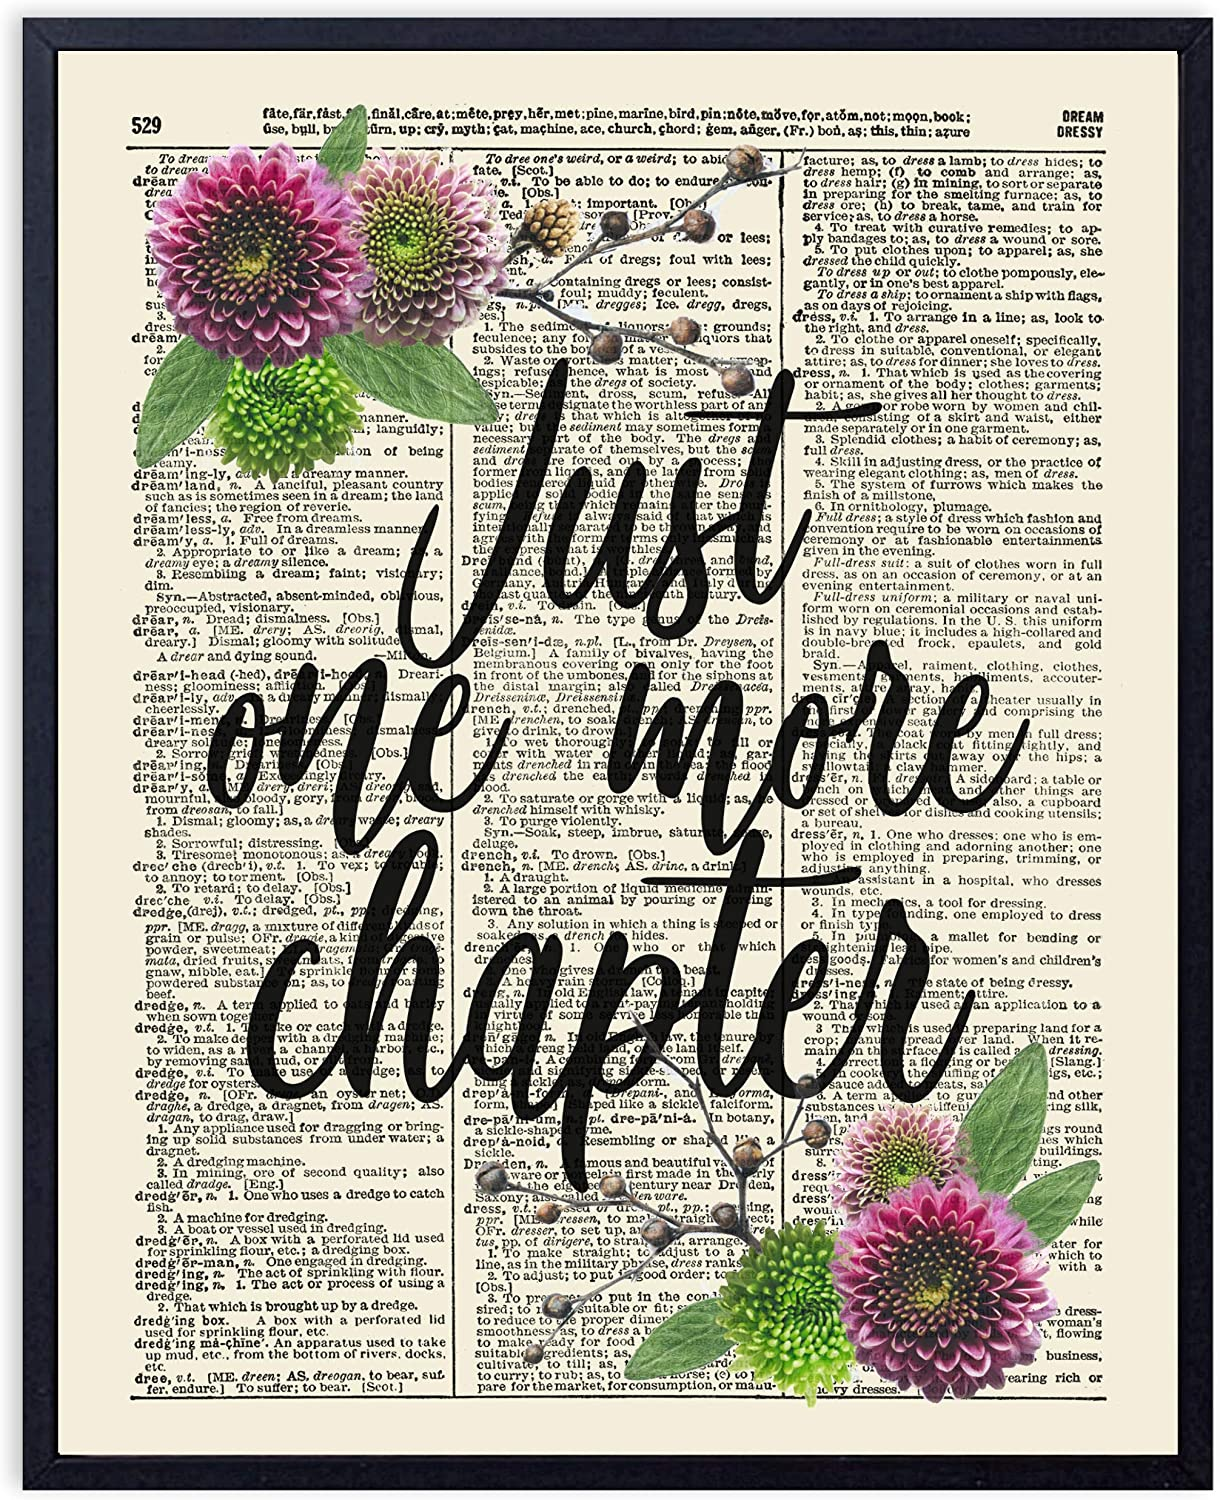 Printsmo, Just One More Chapter, Typography Quote, Vintage Dictionary Art Print, Book Lovers Art Print with Rustic Floral Arrangement, Wall Art for Home Decor and Office, 8x10 inches, Unframed